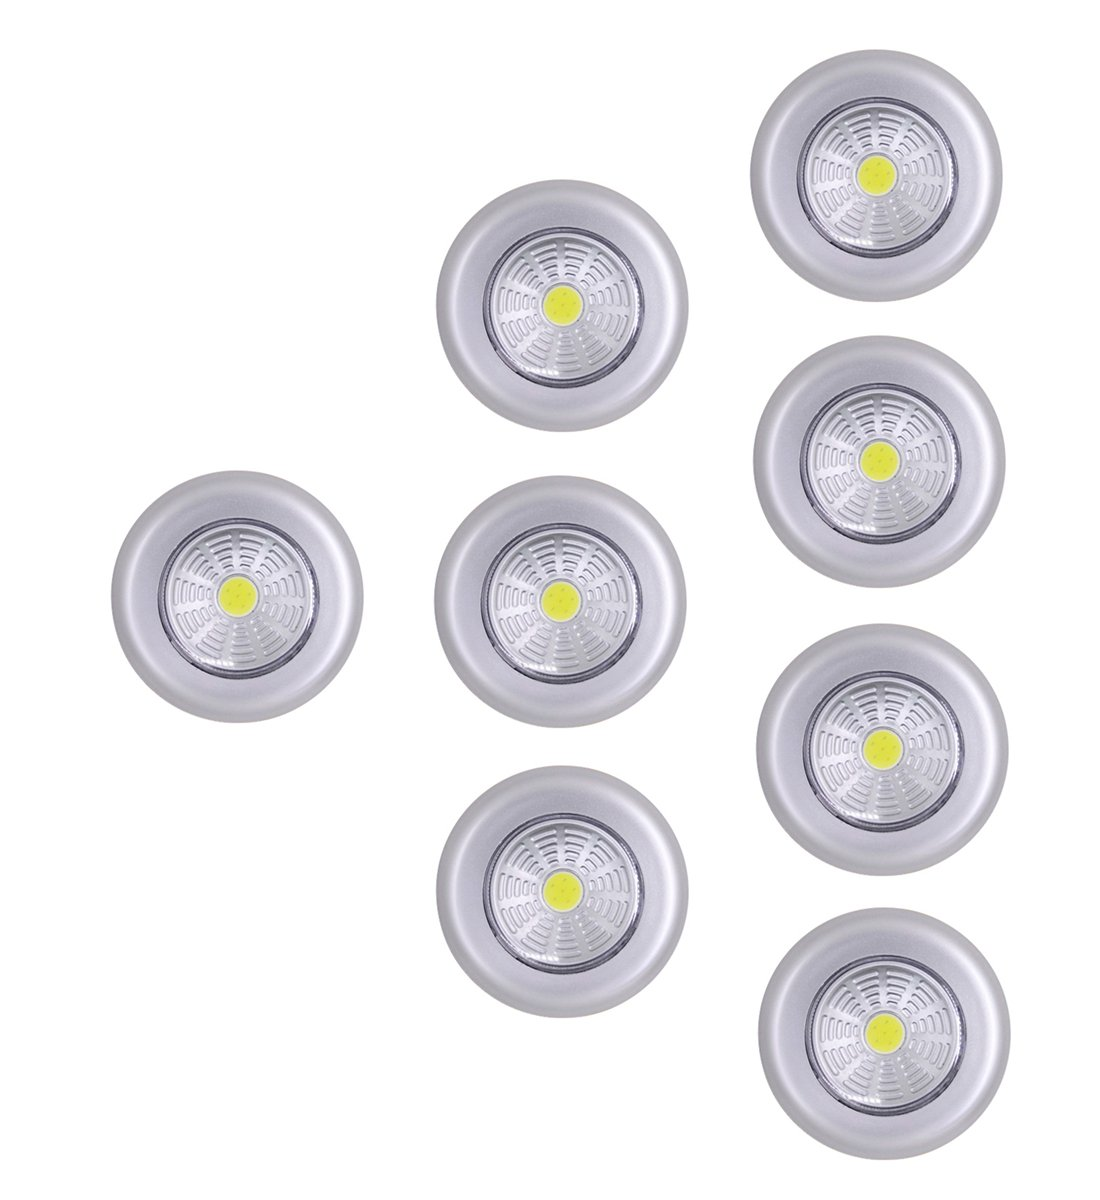 UOTOO COB LED Push Lights, Wireless Stick on Touch Lights, Battery Powered Led Night Light for Closet, Cabinet, Storage Room White Light 8-Pack